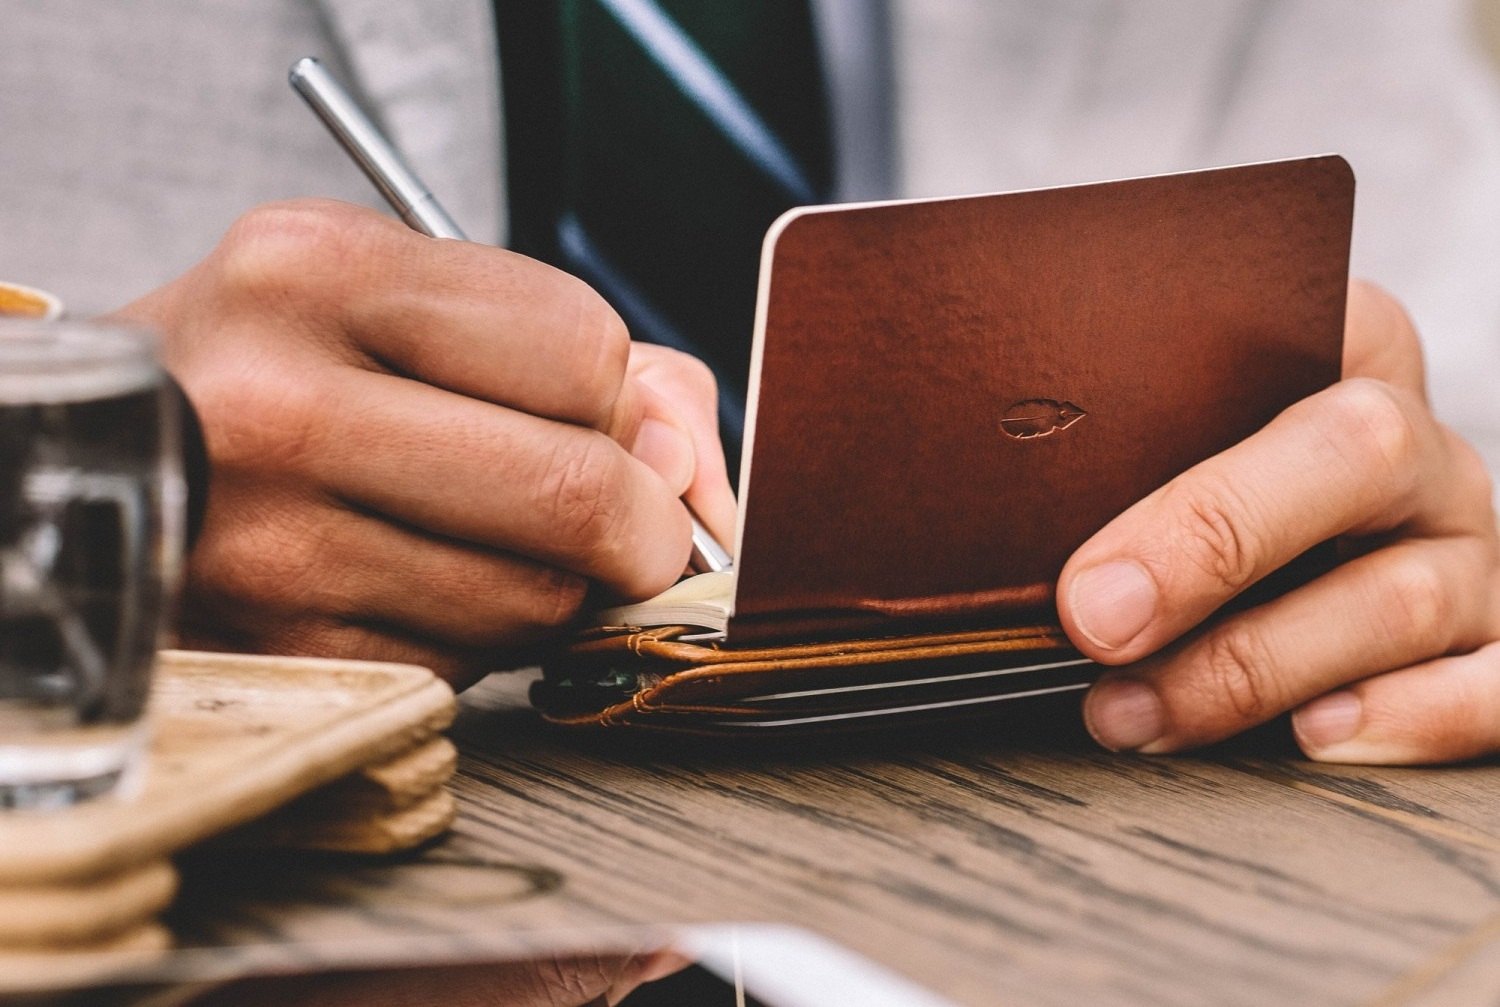 The Inscribe Wallet. Notebook, pen, cash & cards all in 1 luxury piece.